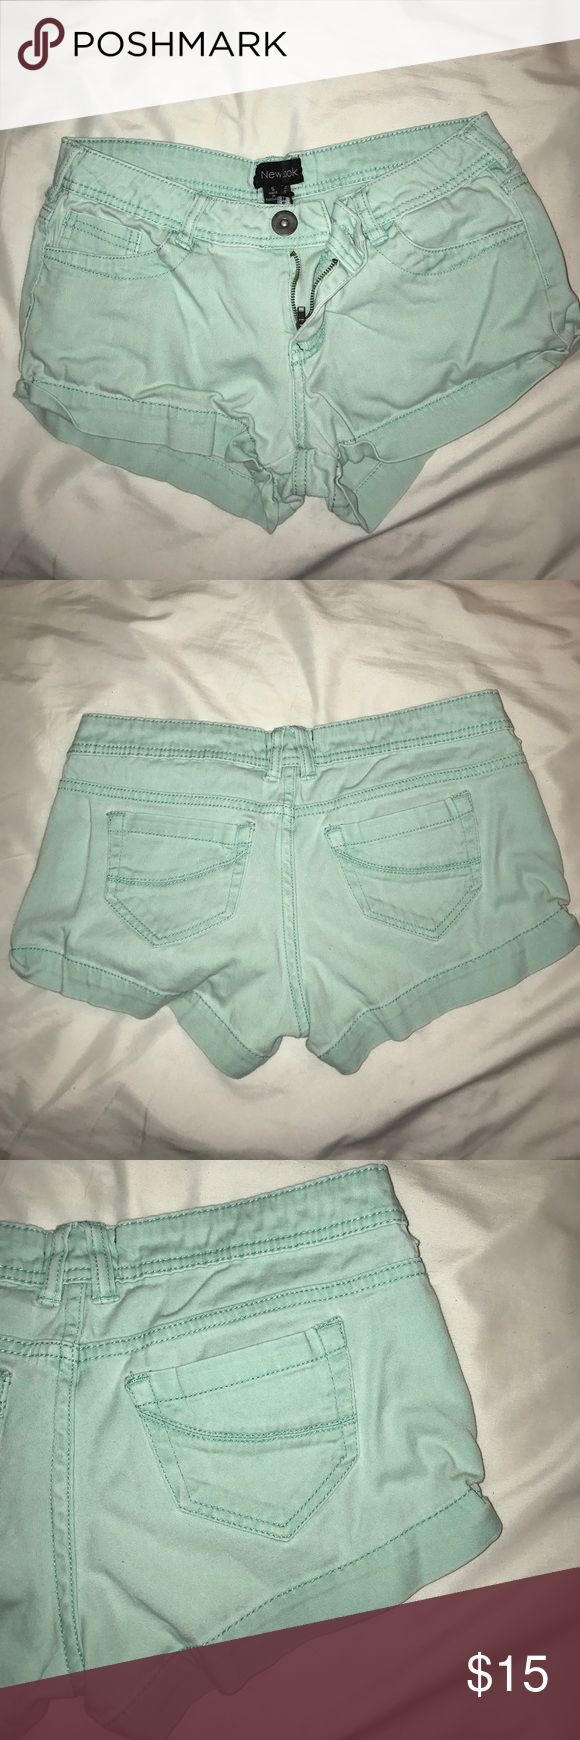 Blue shorts Size 5 Size 5 New Look shorts New Look Shorts